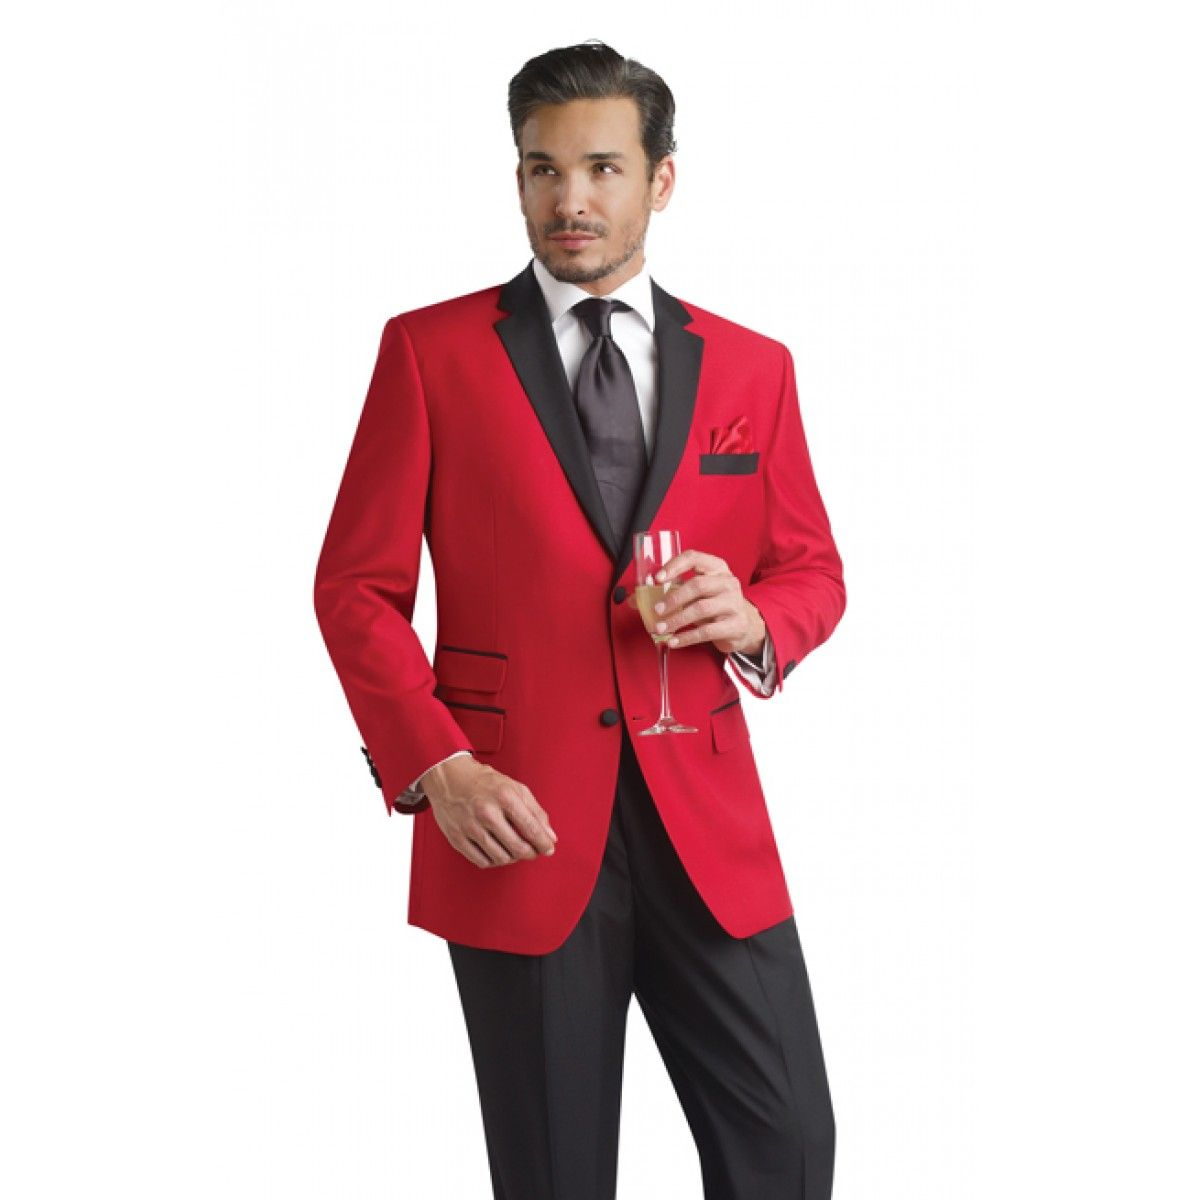 Men's Slim Fit Red Tuxedo with Black Trousers | CHESTI DE PURTAT ...